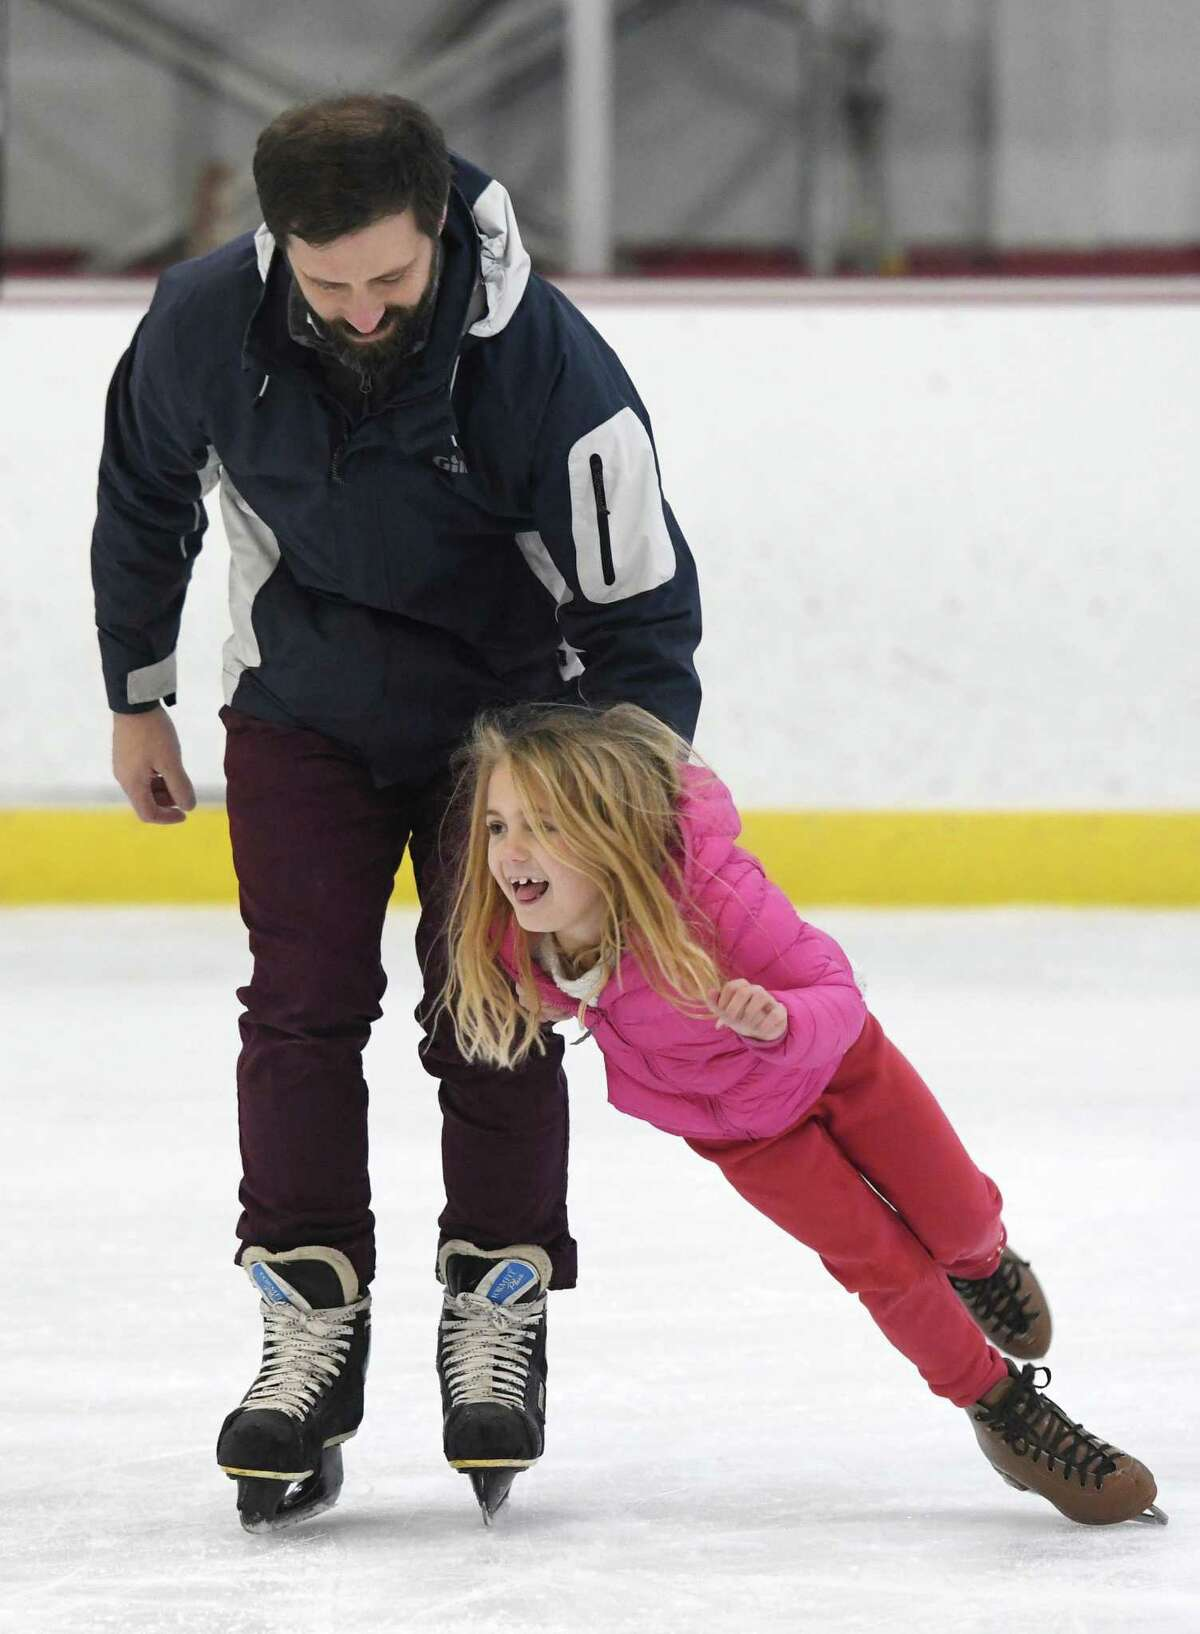 Old Greenwich's Tom O'Connor helps his daughter Kellan O'Connor, 6, from falling while skating during the open skating session at Dorothy Hamill Rink in the Byram section of Greenwich, Conn. Monday, Dec. 30, 2019. The rink offers public skating from noon to 1:30 p.m. every weekday and from 2 p.m. to 4 p.m. on Saturday and Sunday.